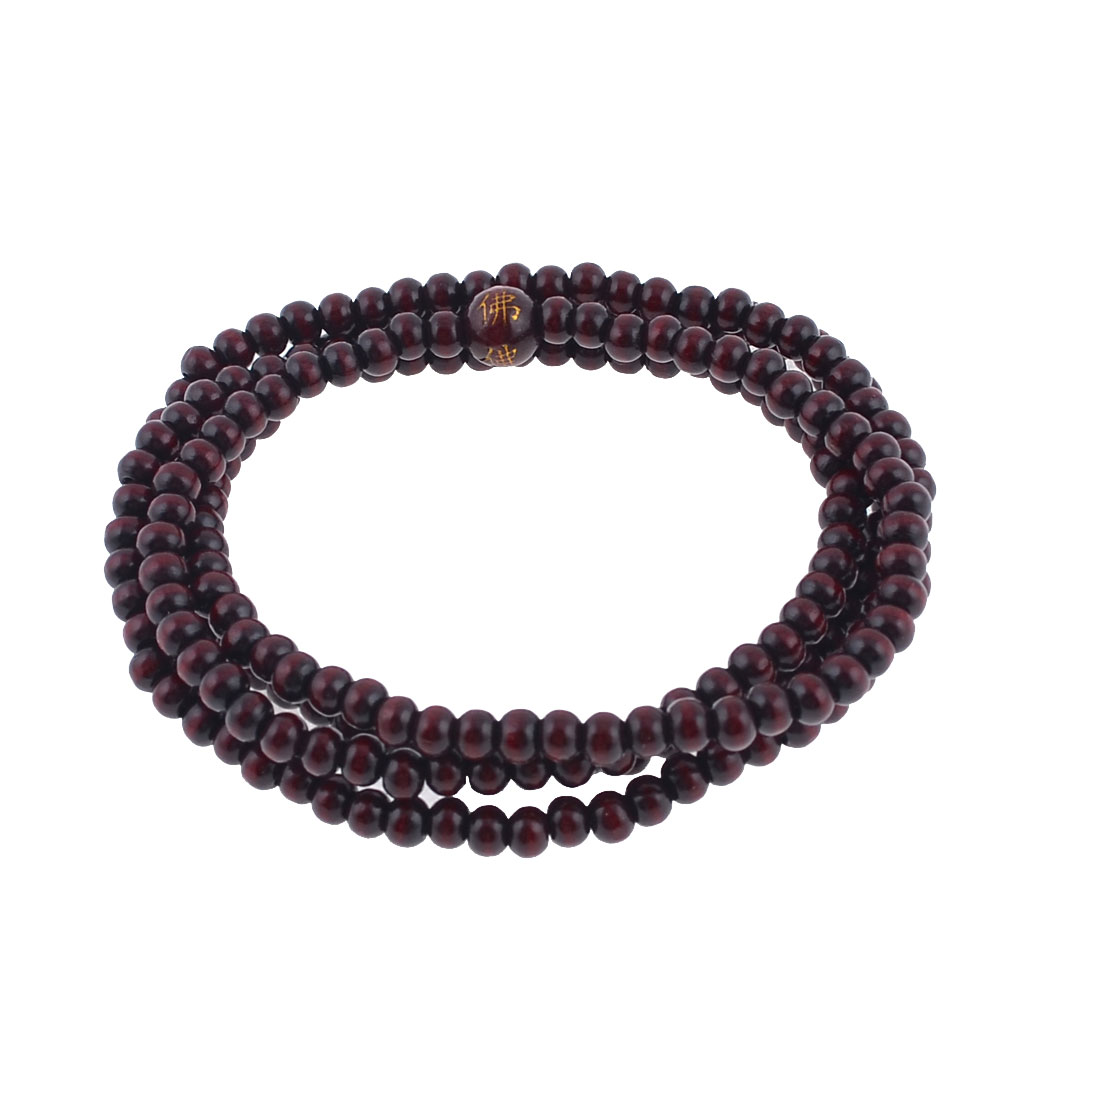 Burgundy 80cm Girth Smell Wood Buddhist Prayer Beads Necklace